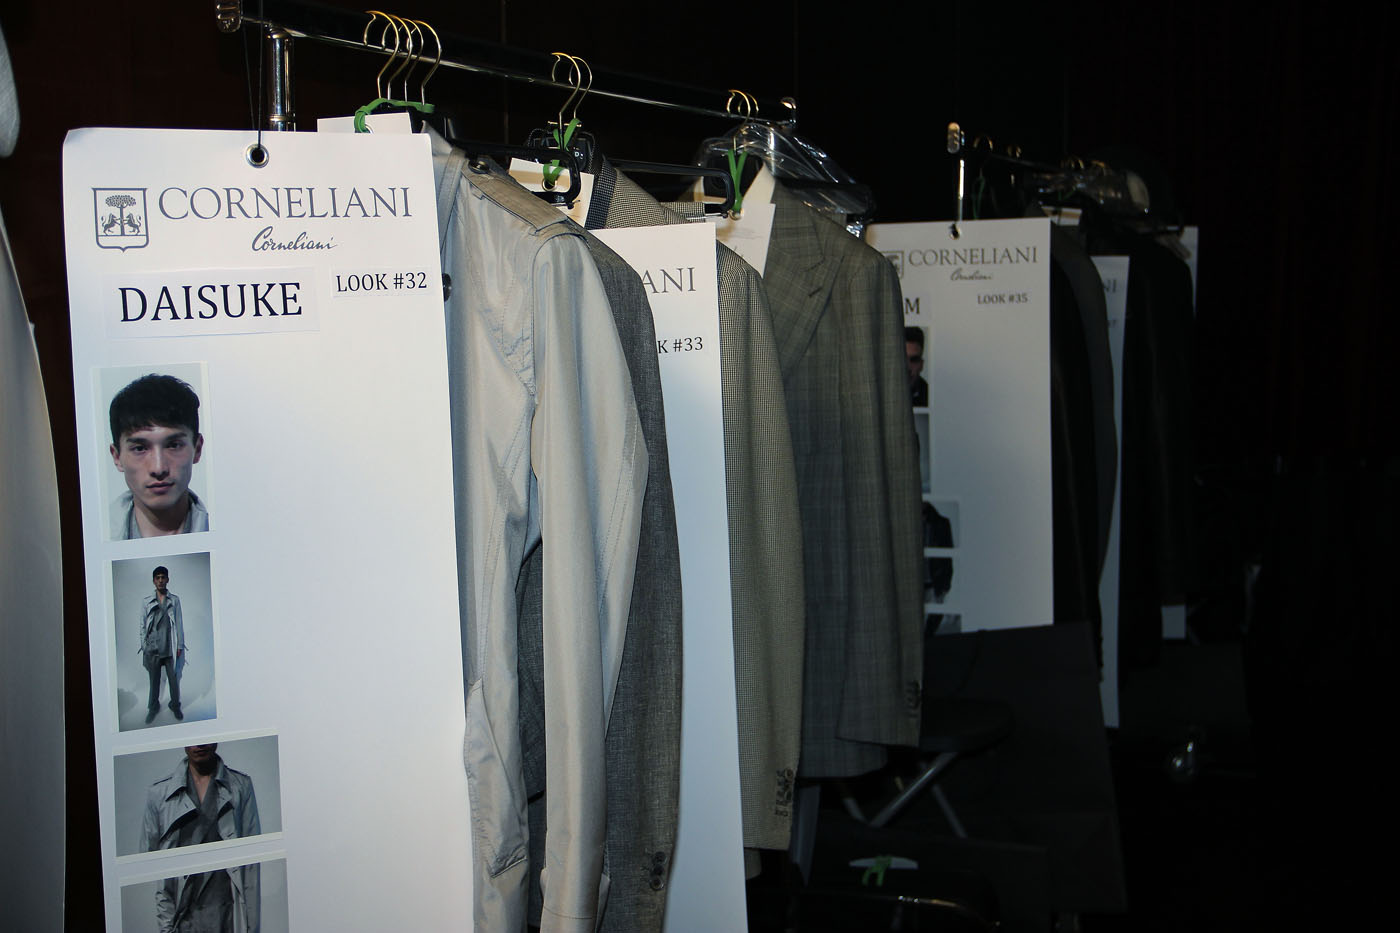 corneliani-backstage-spring-summer-2012-milano-fashion-week-corneliani